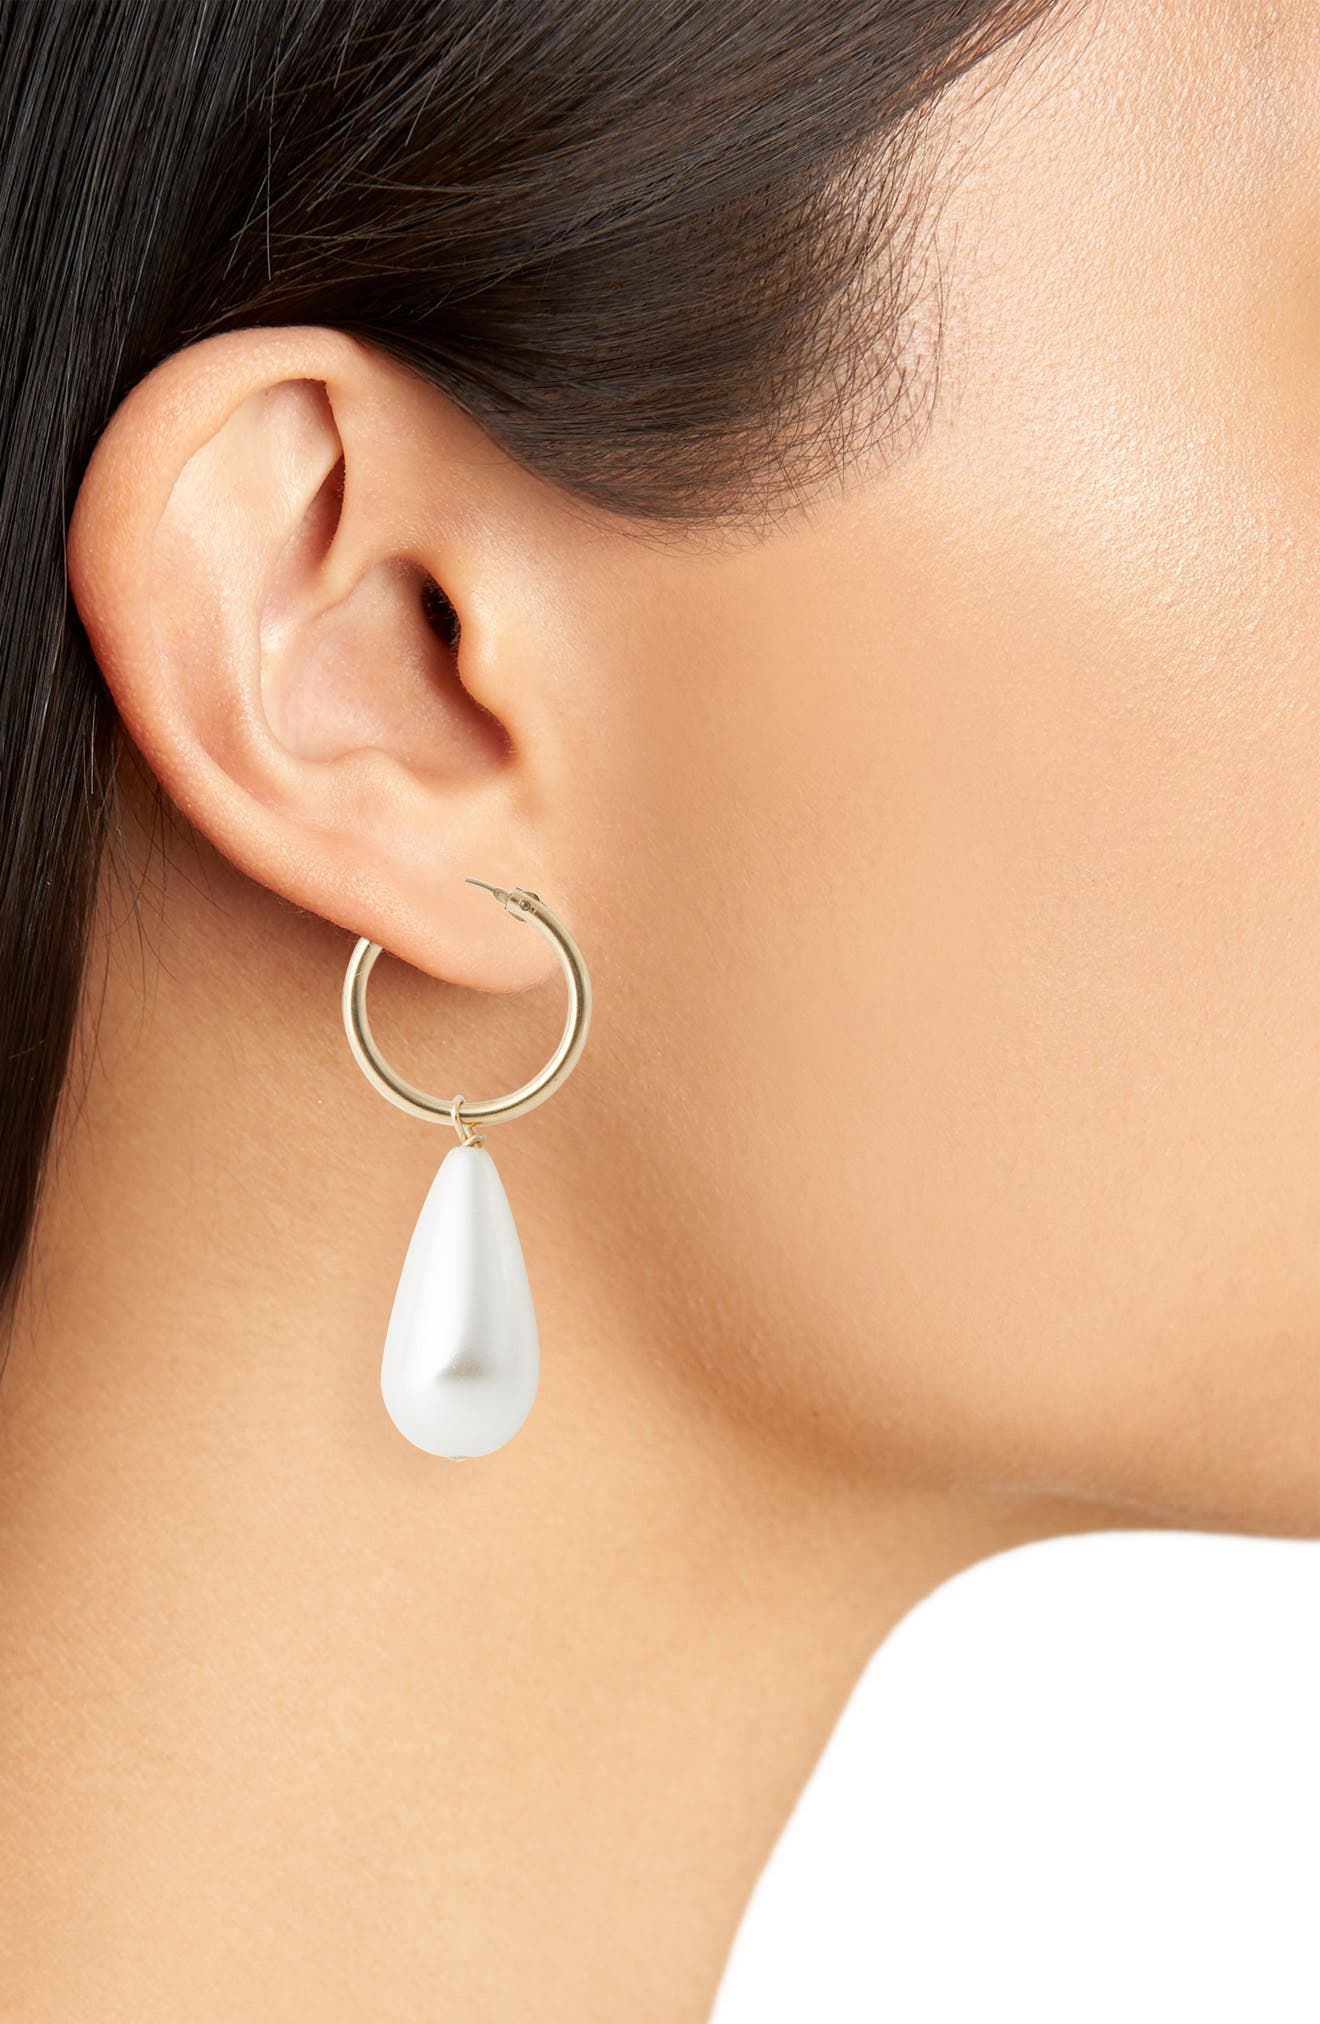 Arcilla Mismatched Swarovski Imitation Pearl Hoop Earrings,                             Alternate thumbnail 2, color,                             WHITE PEARL